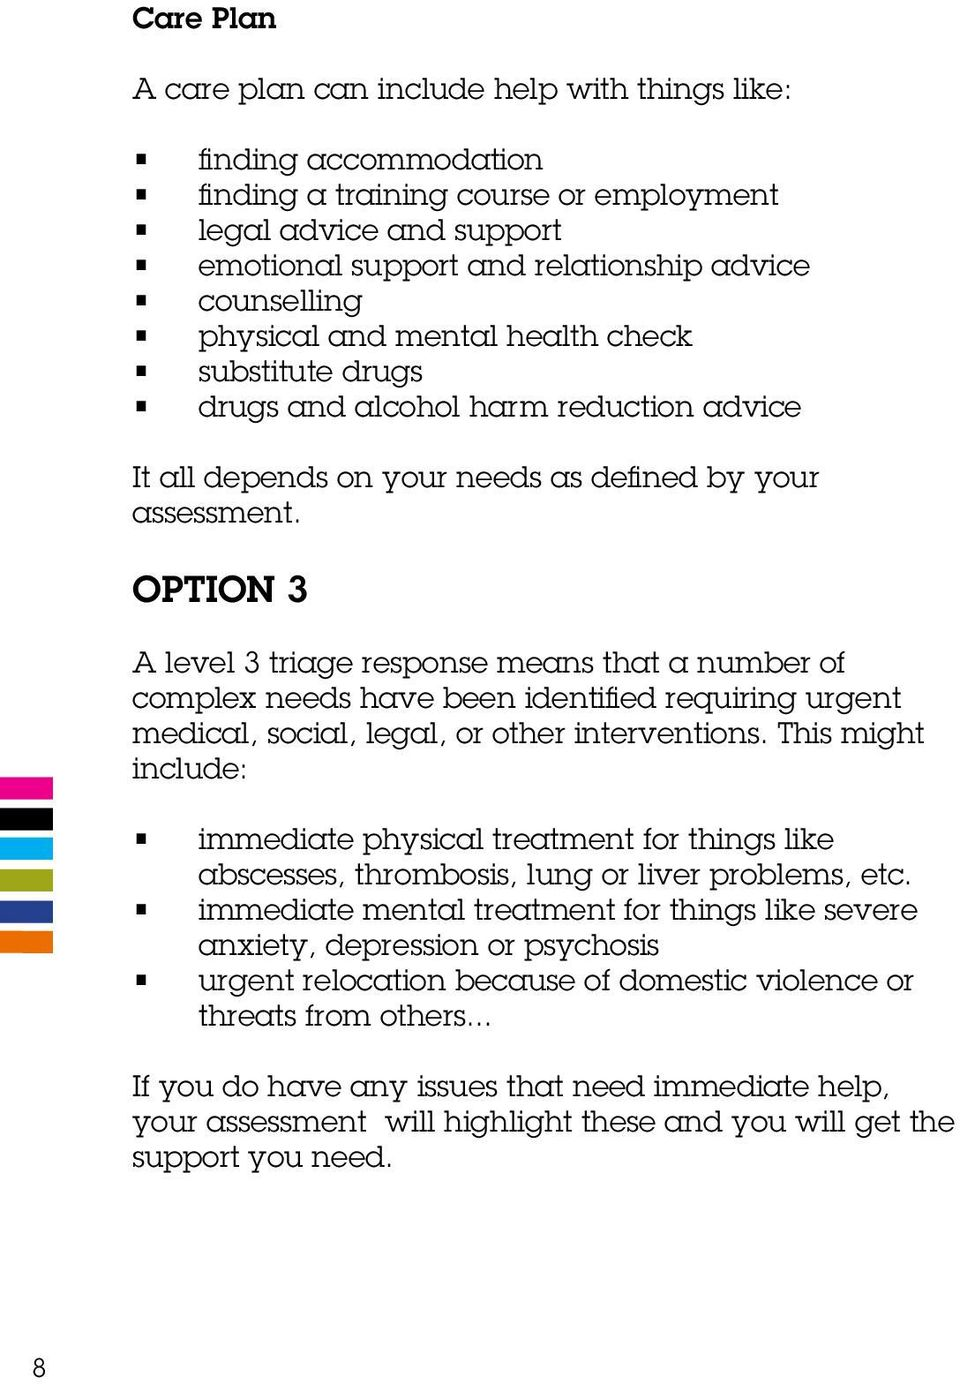 OPTION 3 A level 3 triage response means that a number of complex needs have been identified requiring urgent medical, social, legal, or other interventions.